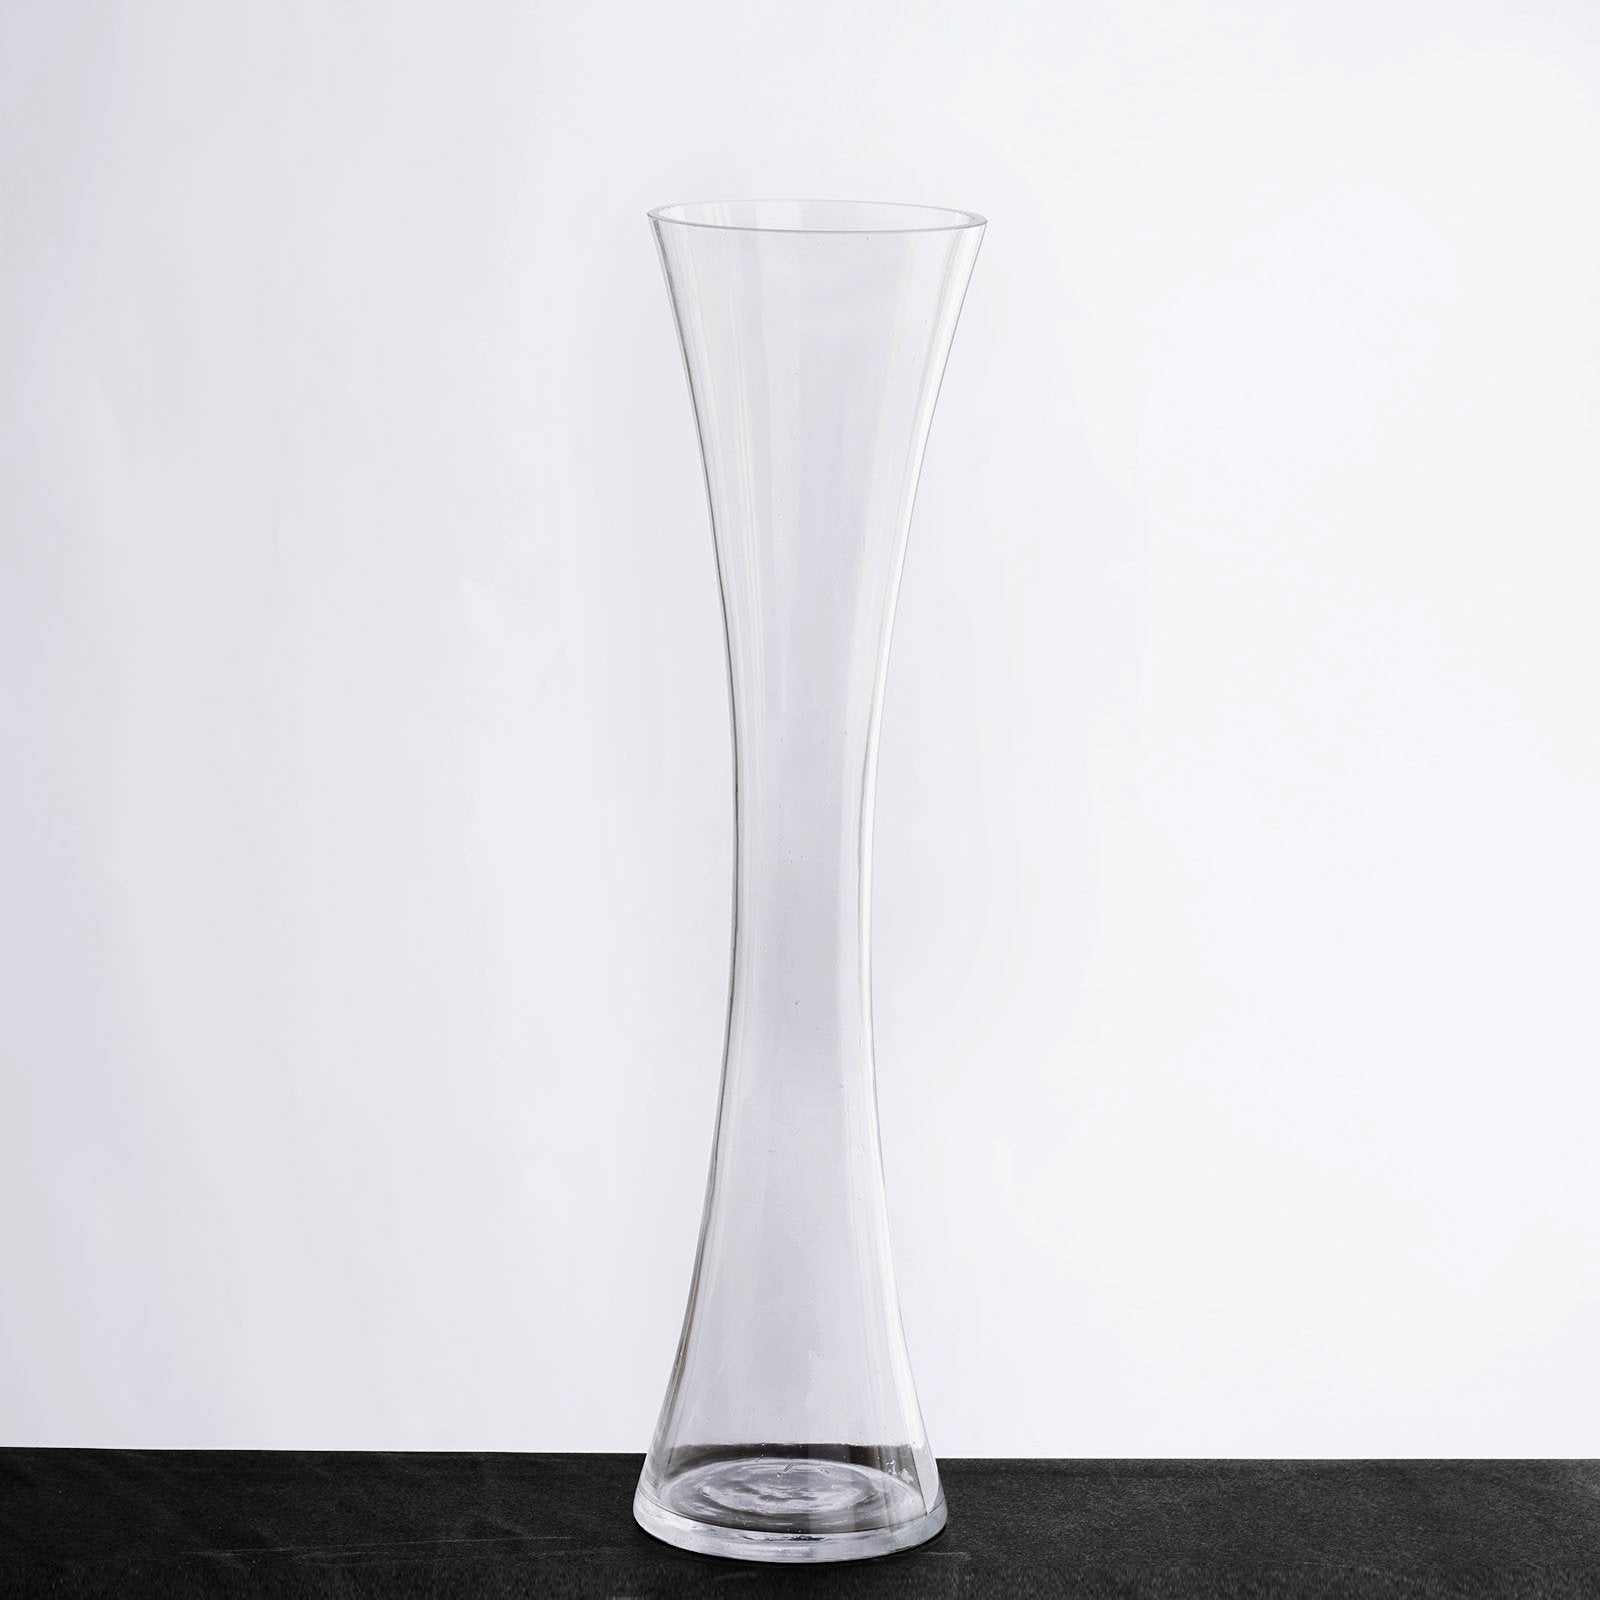 16 tall clear hourglass shaped floral centerpiece vase wedding 16 tall clear hourglass shaped floral centerpiece vase wedding party decoration 12 pcs reviewsmspy